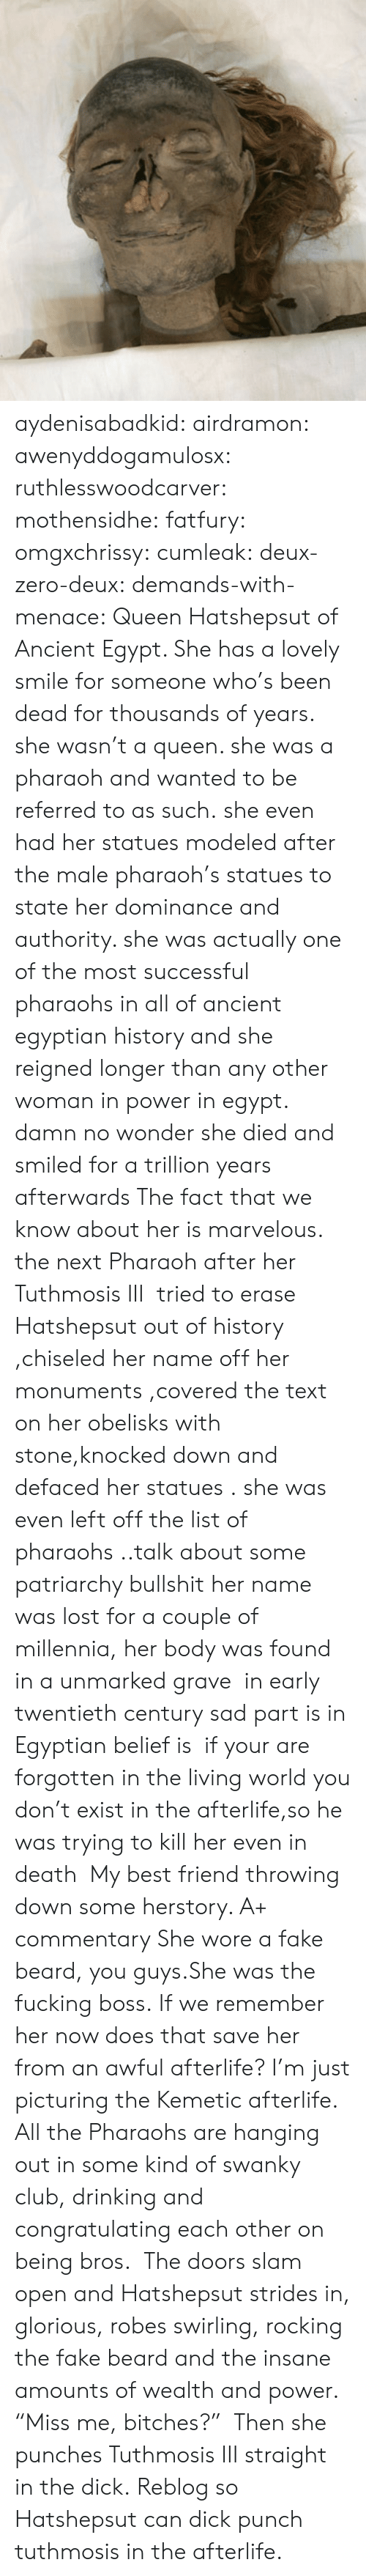 """Beard, Best Friend, and Club: aydenisabadkid:  airdramon:  awenyddogamulosx:  ruthlesswoodcarver:  mothensidhe:  fatfury:  omgxchrissy:  cumleak:  deux-zero-deux:  demands-with-menace:  Queen Hatshepsut of Ancient Egypt. She has a lovely smile for someone who's been dead for thousands of years.  she wasn't a queen. she was a pharaoh and wanted to be referred to as such.she even had her statues modeled after the male pharaoh's statues to state her dominance and authority. she was actually one of the most successful pharaohs in all of ancient egyptian history and she reigned longer than any other woman in power in egypt.  damn no wonder she died and smiled for a trillion years afterwards  The fact that we know about her is marvelous. the next Pharaoh after her Tuthmosis III tried to erase Hatshepsut out of history ,chiseled her name off her monuments ,covered the text on her obelisks with stone,knocked down and defaced her statues . she was even left off the list of pharaohs ..talk about some patriarchy bullshit her name was lost for a couple of millennia, her body was found in a unmarked grave in early twentieth century sad part is in Egyptian belief is if your are forgotten in the living world you don't exist in the afterlife,so he was trying to kill her even in death  My best friend throwing down some herstory. A+ commentary  She wore a fake beard, you guys.She was the fucking boss.  If we remember her now does that save her from an awful afterlife?  I'm just picturing the Kemetic afterlife. All the Pharaohs are hanging out in some kind of swanky club, drinking and congratulating each other on being bros. The doors slam open and Hatshepsut strides in, glorious, robes swirling, rocking the fake beard and the insane amounts of wealth and power. """"Miss me, bitches?""""  Then she punches Tuthmosis III straight in the dick.   Reblog so Hatshepsut can dick punch tuthmosis in the afterlife."""